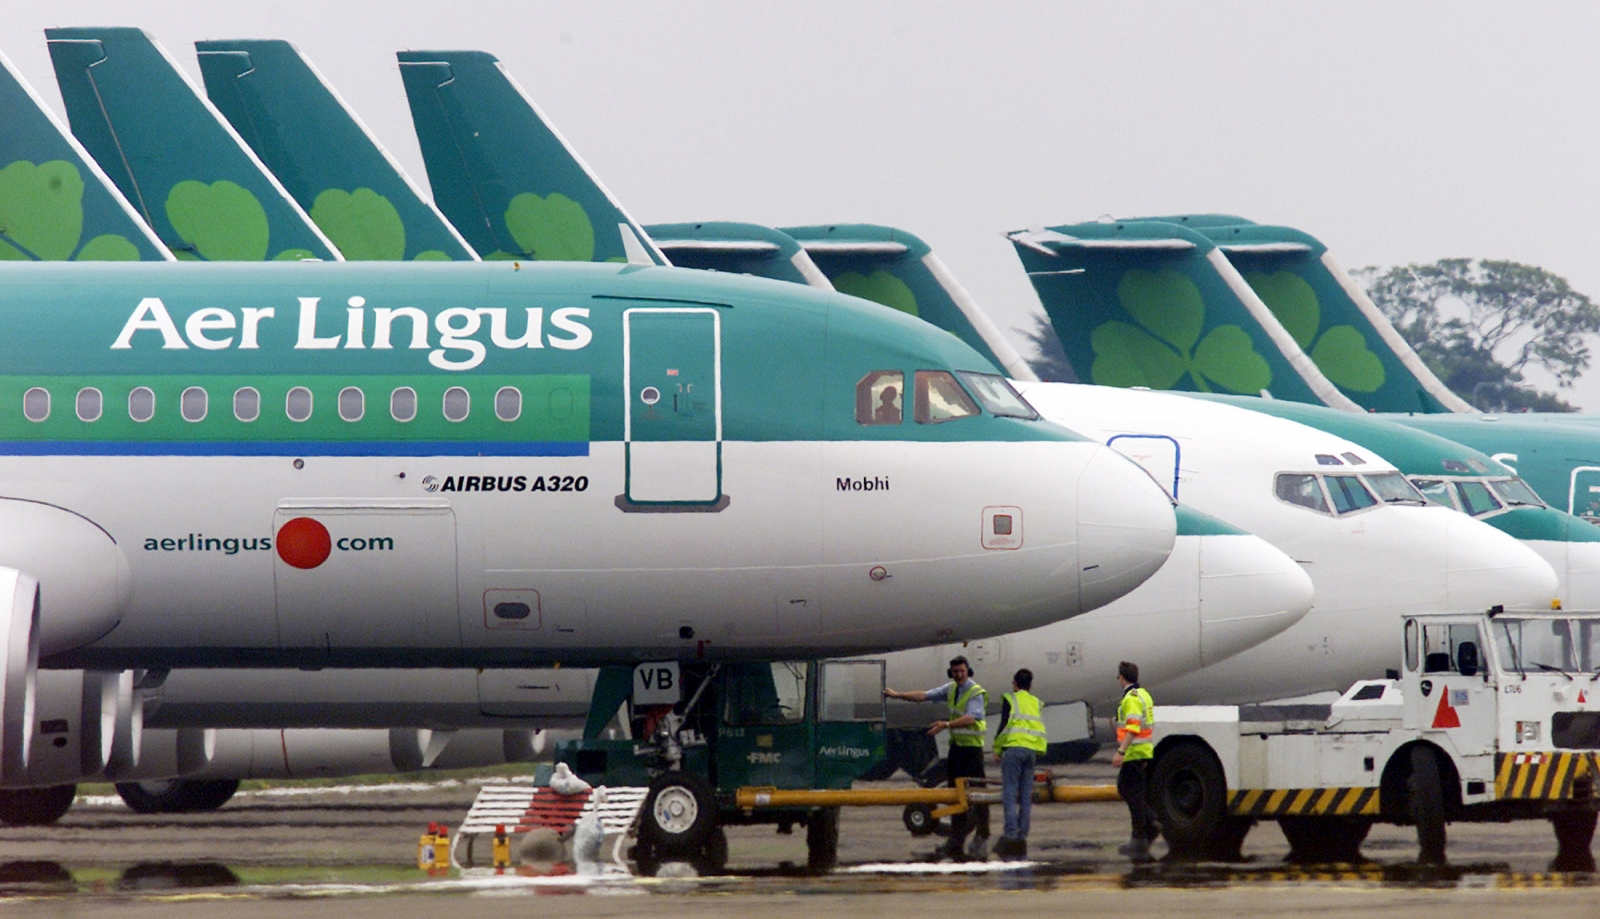 Ground crew are seen parking an Aer Lingus Airbus A320 away from the passenger terminals at Dublin Airport, in the Republic of Ireland in this June 2, 2002 file photograph